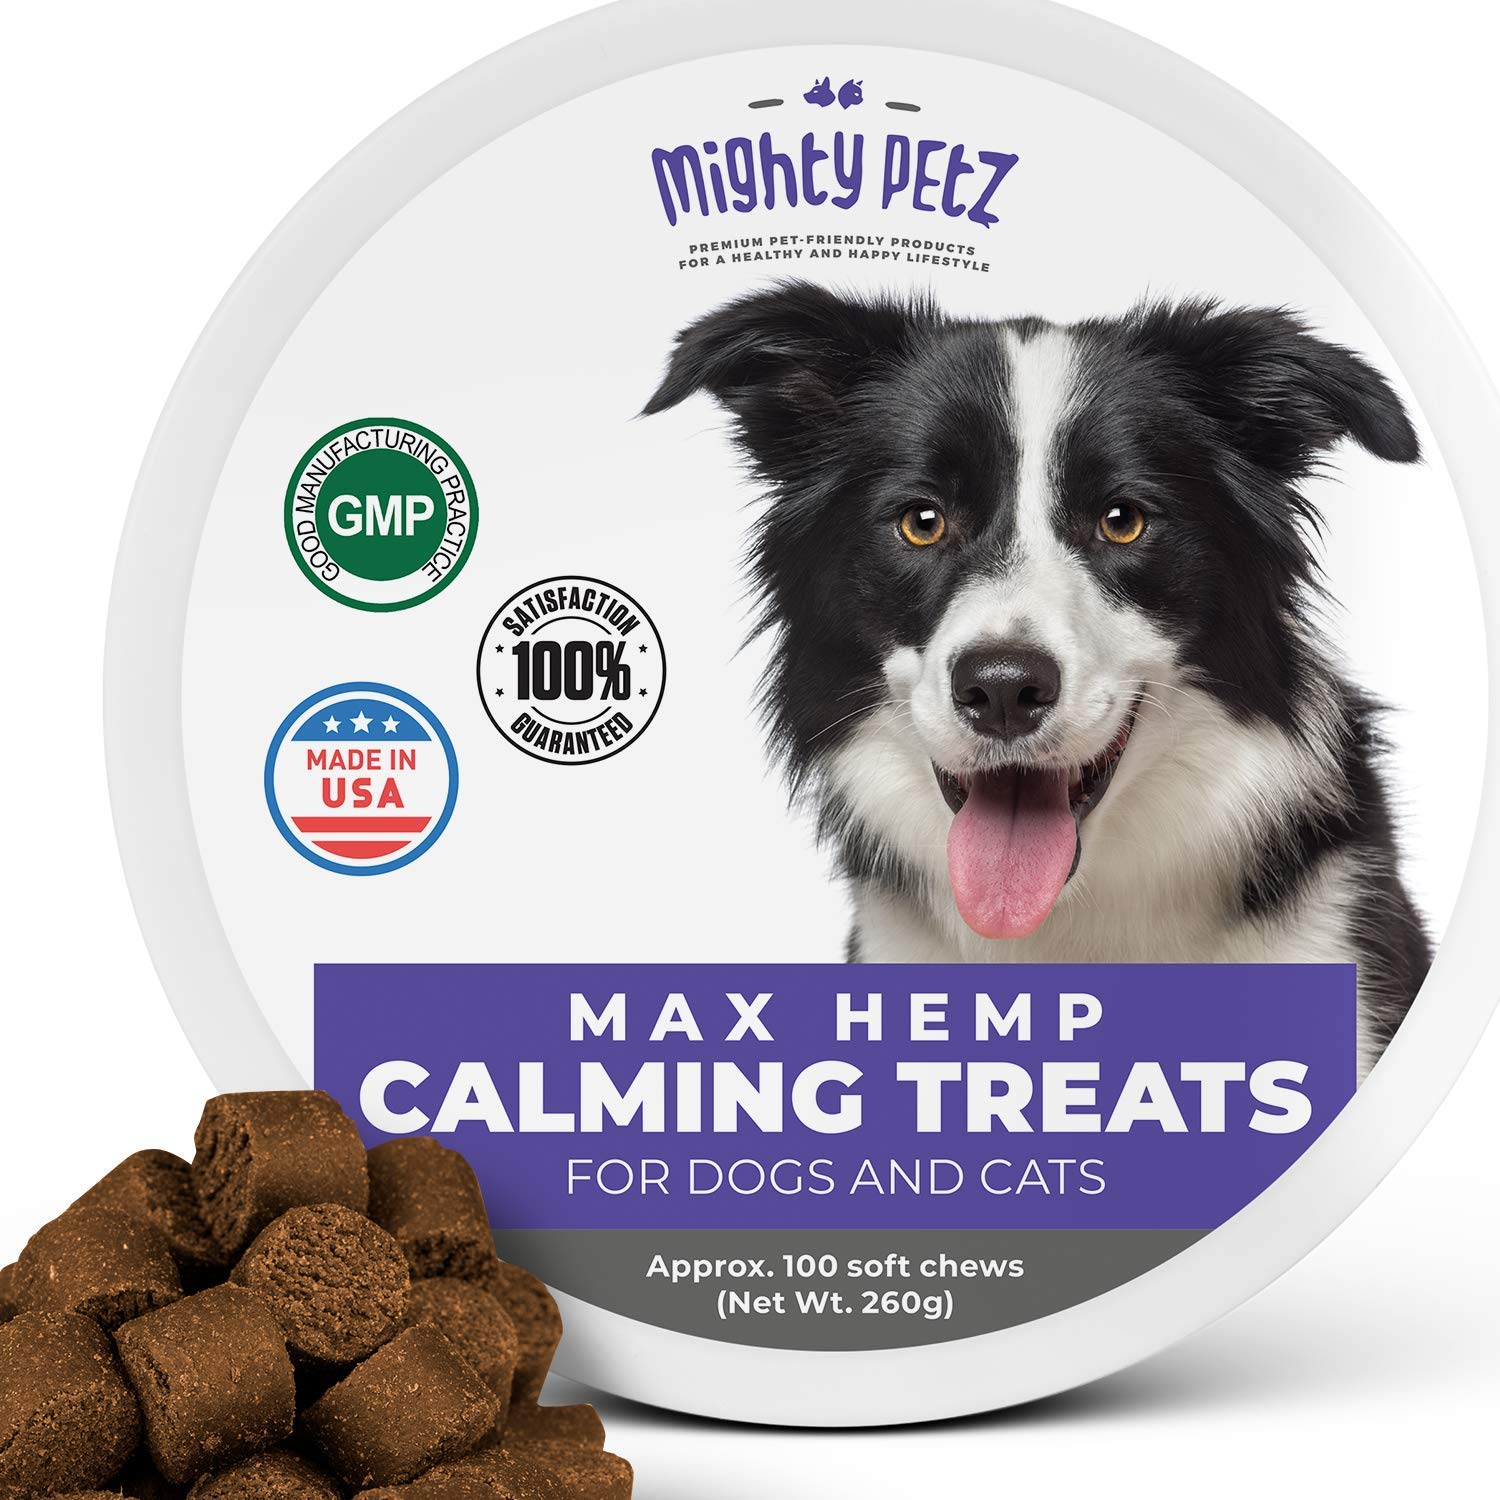 MAX Hemp Calming Treats for Dogs - Dog Anxiety Relief & Anti Stress Bites with Melatonin + Hemp Oil. Behavioral Aid Chews for Pet Composure, Separation, Chewing, Barking, Thunder Storms, Fireworks by Mighty Petz